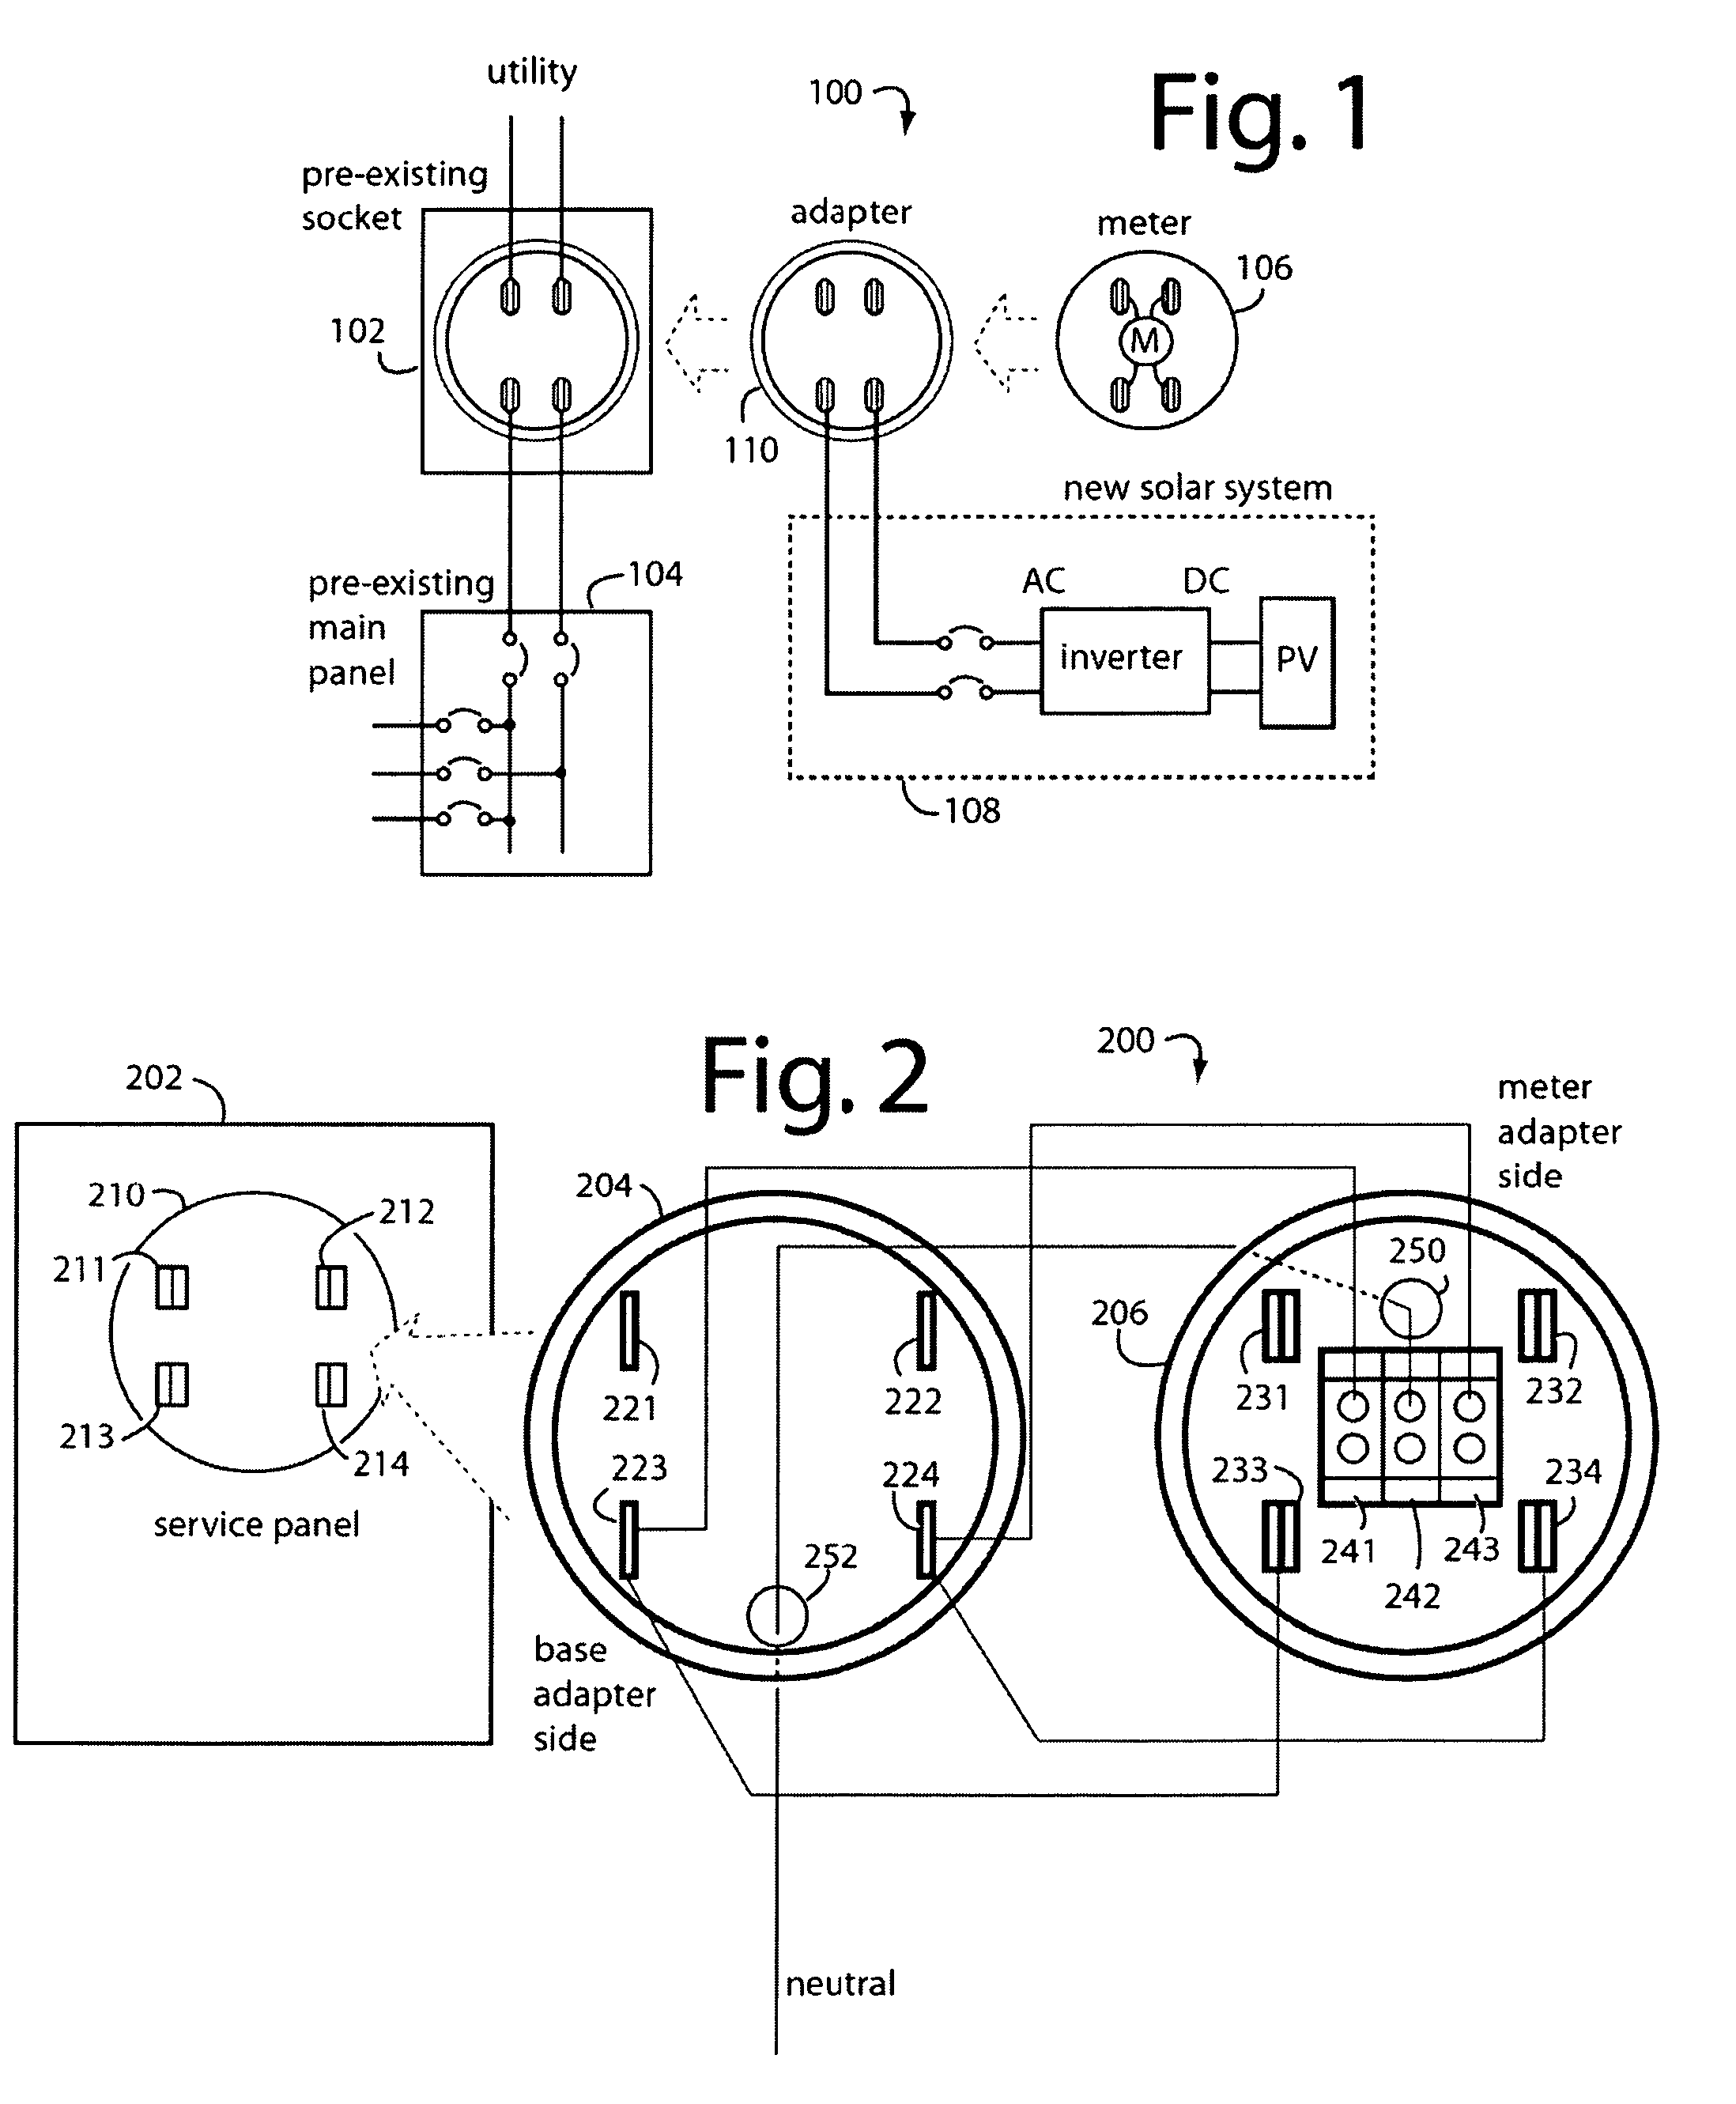 US07648389 20100119 D00001 patent us7648389 supply side backfeed meter socket adapter electrical meter base wiring diagram at crackthecode.co